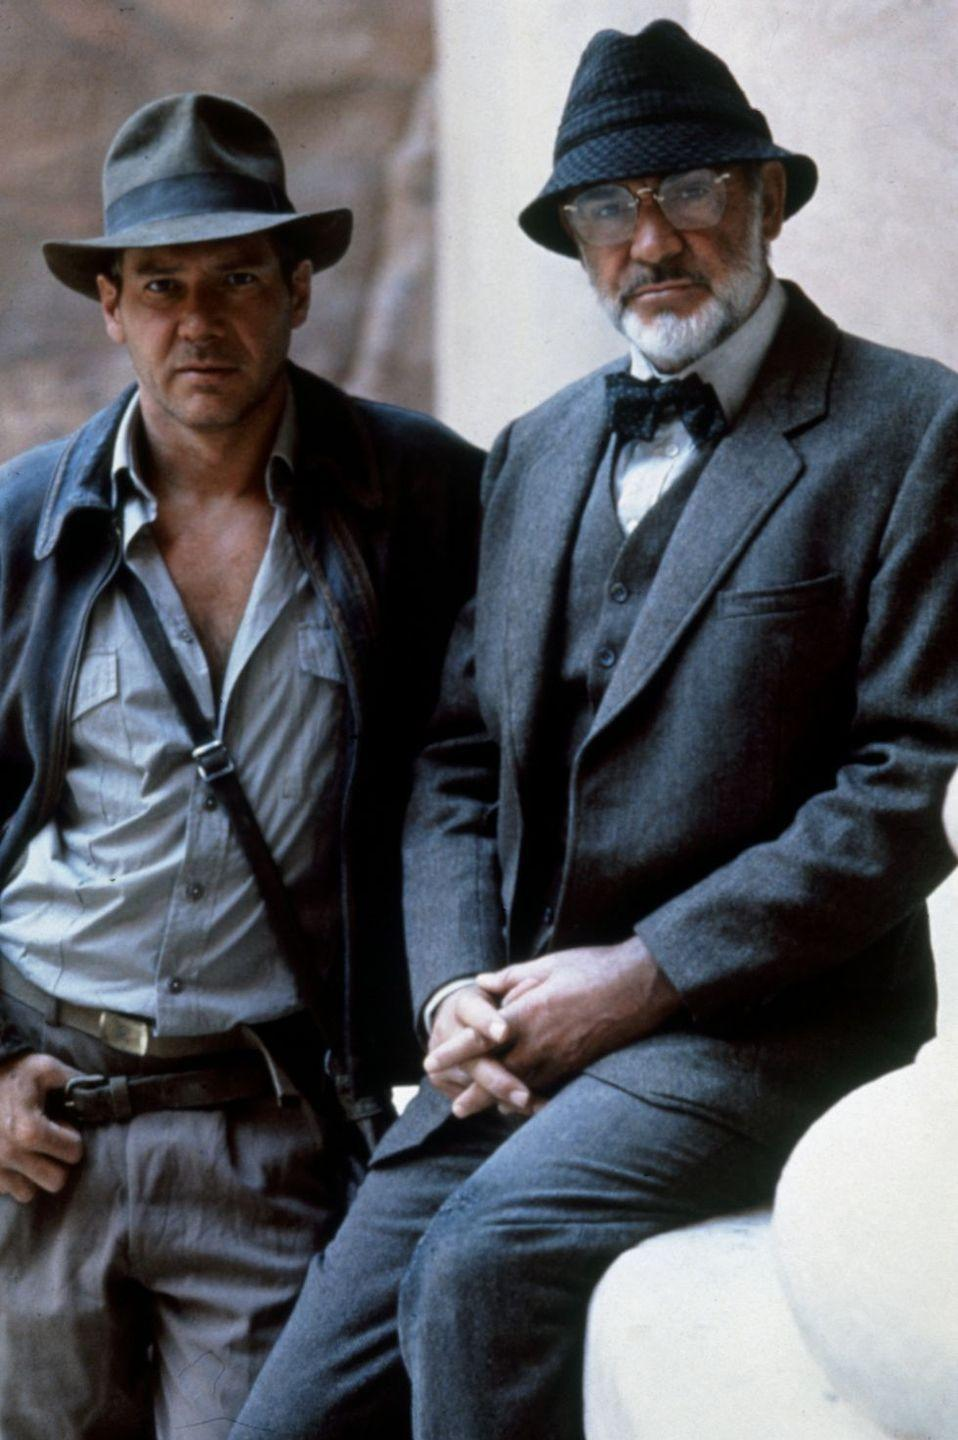 <p>Sean Connery as Indiana Jones's father Henry Jones in a publicity still for <em>Indiana Jones and the Last Crusade</em>, 1989</p>